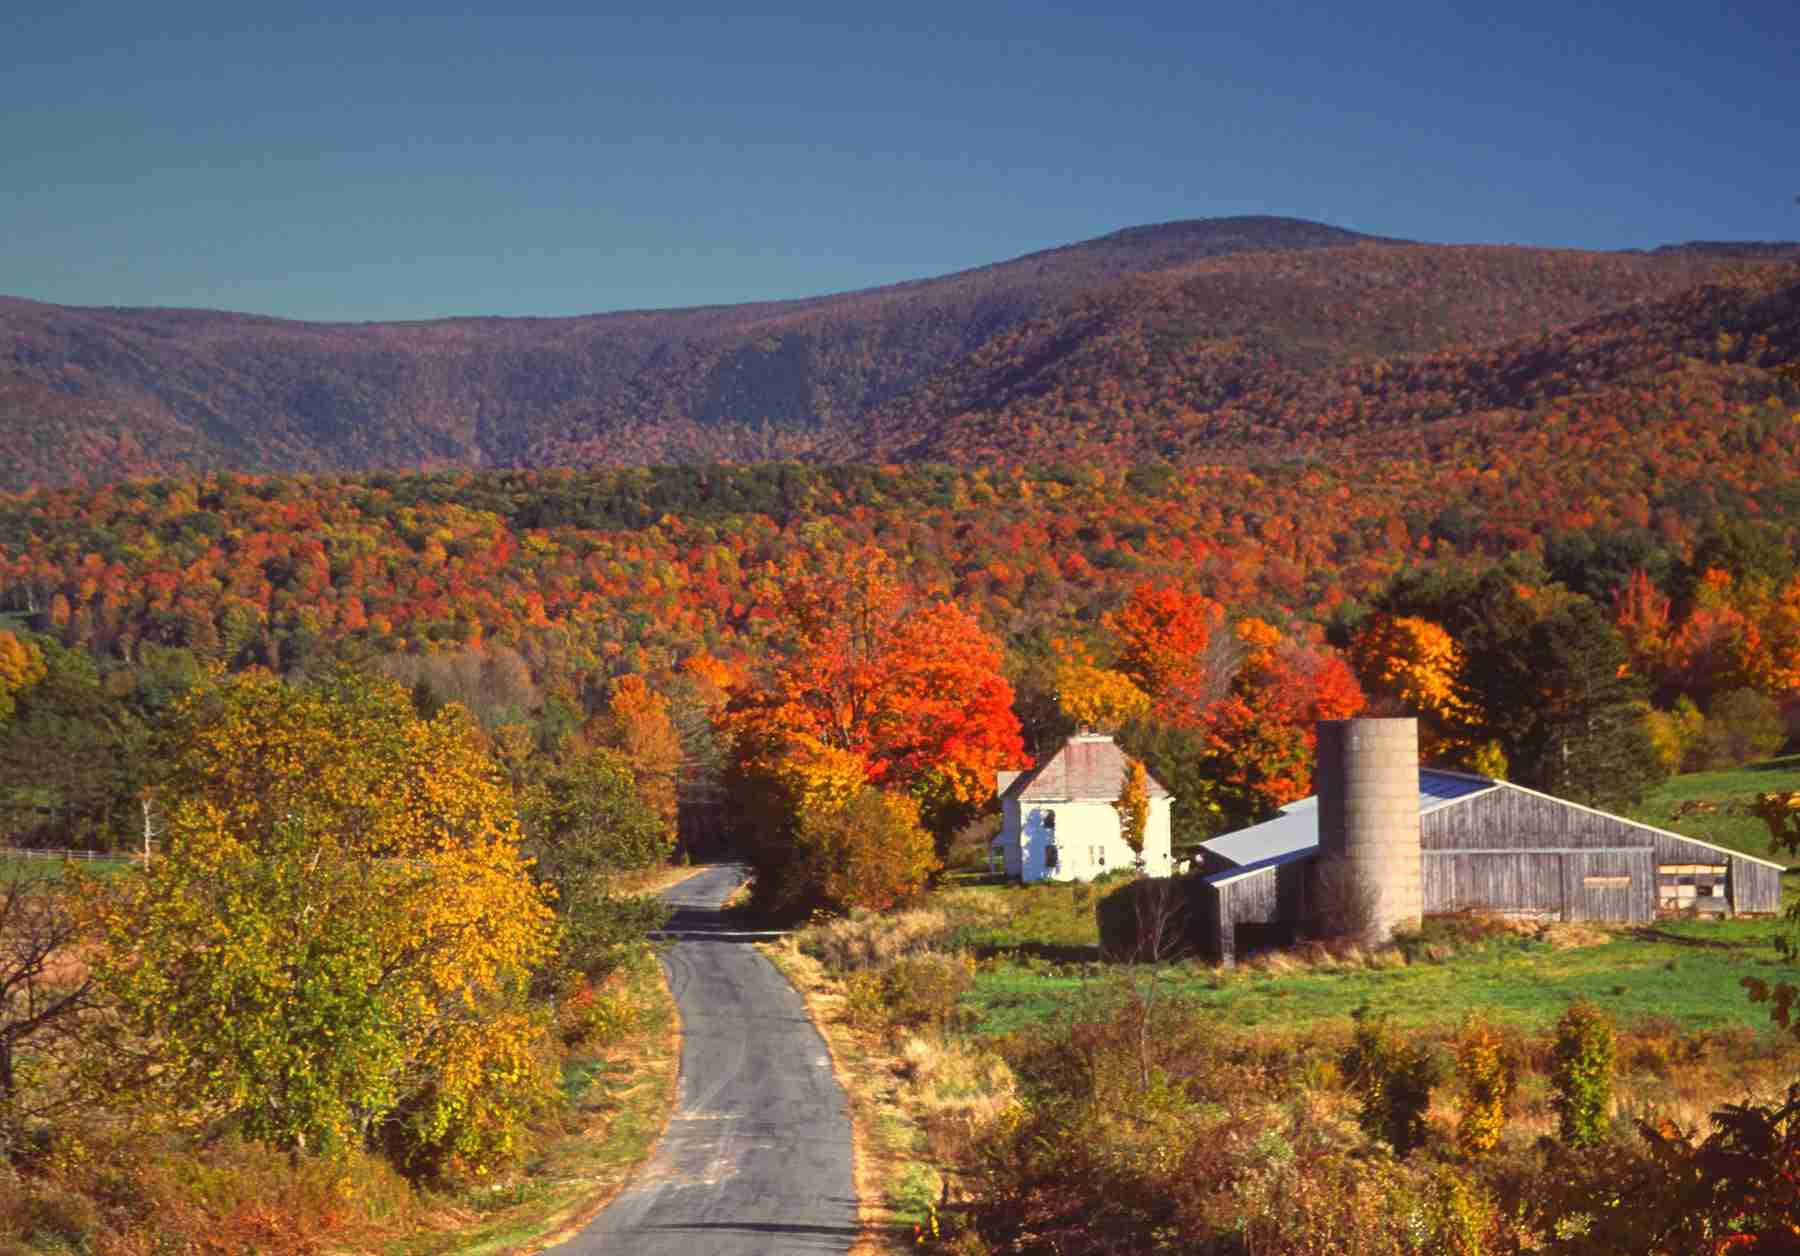 The Berkshires region of Massachusetts with Mt Greylock in the background.